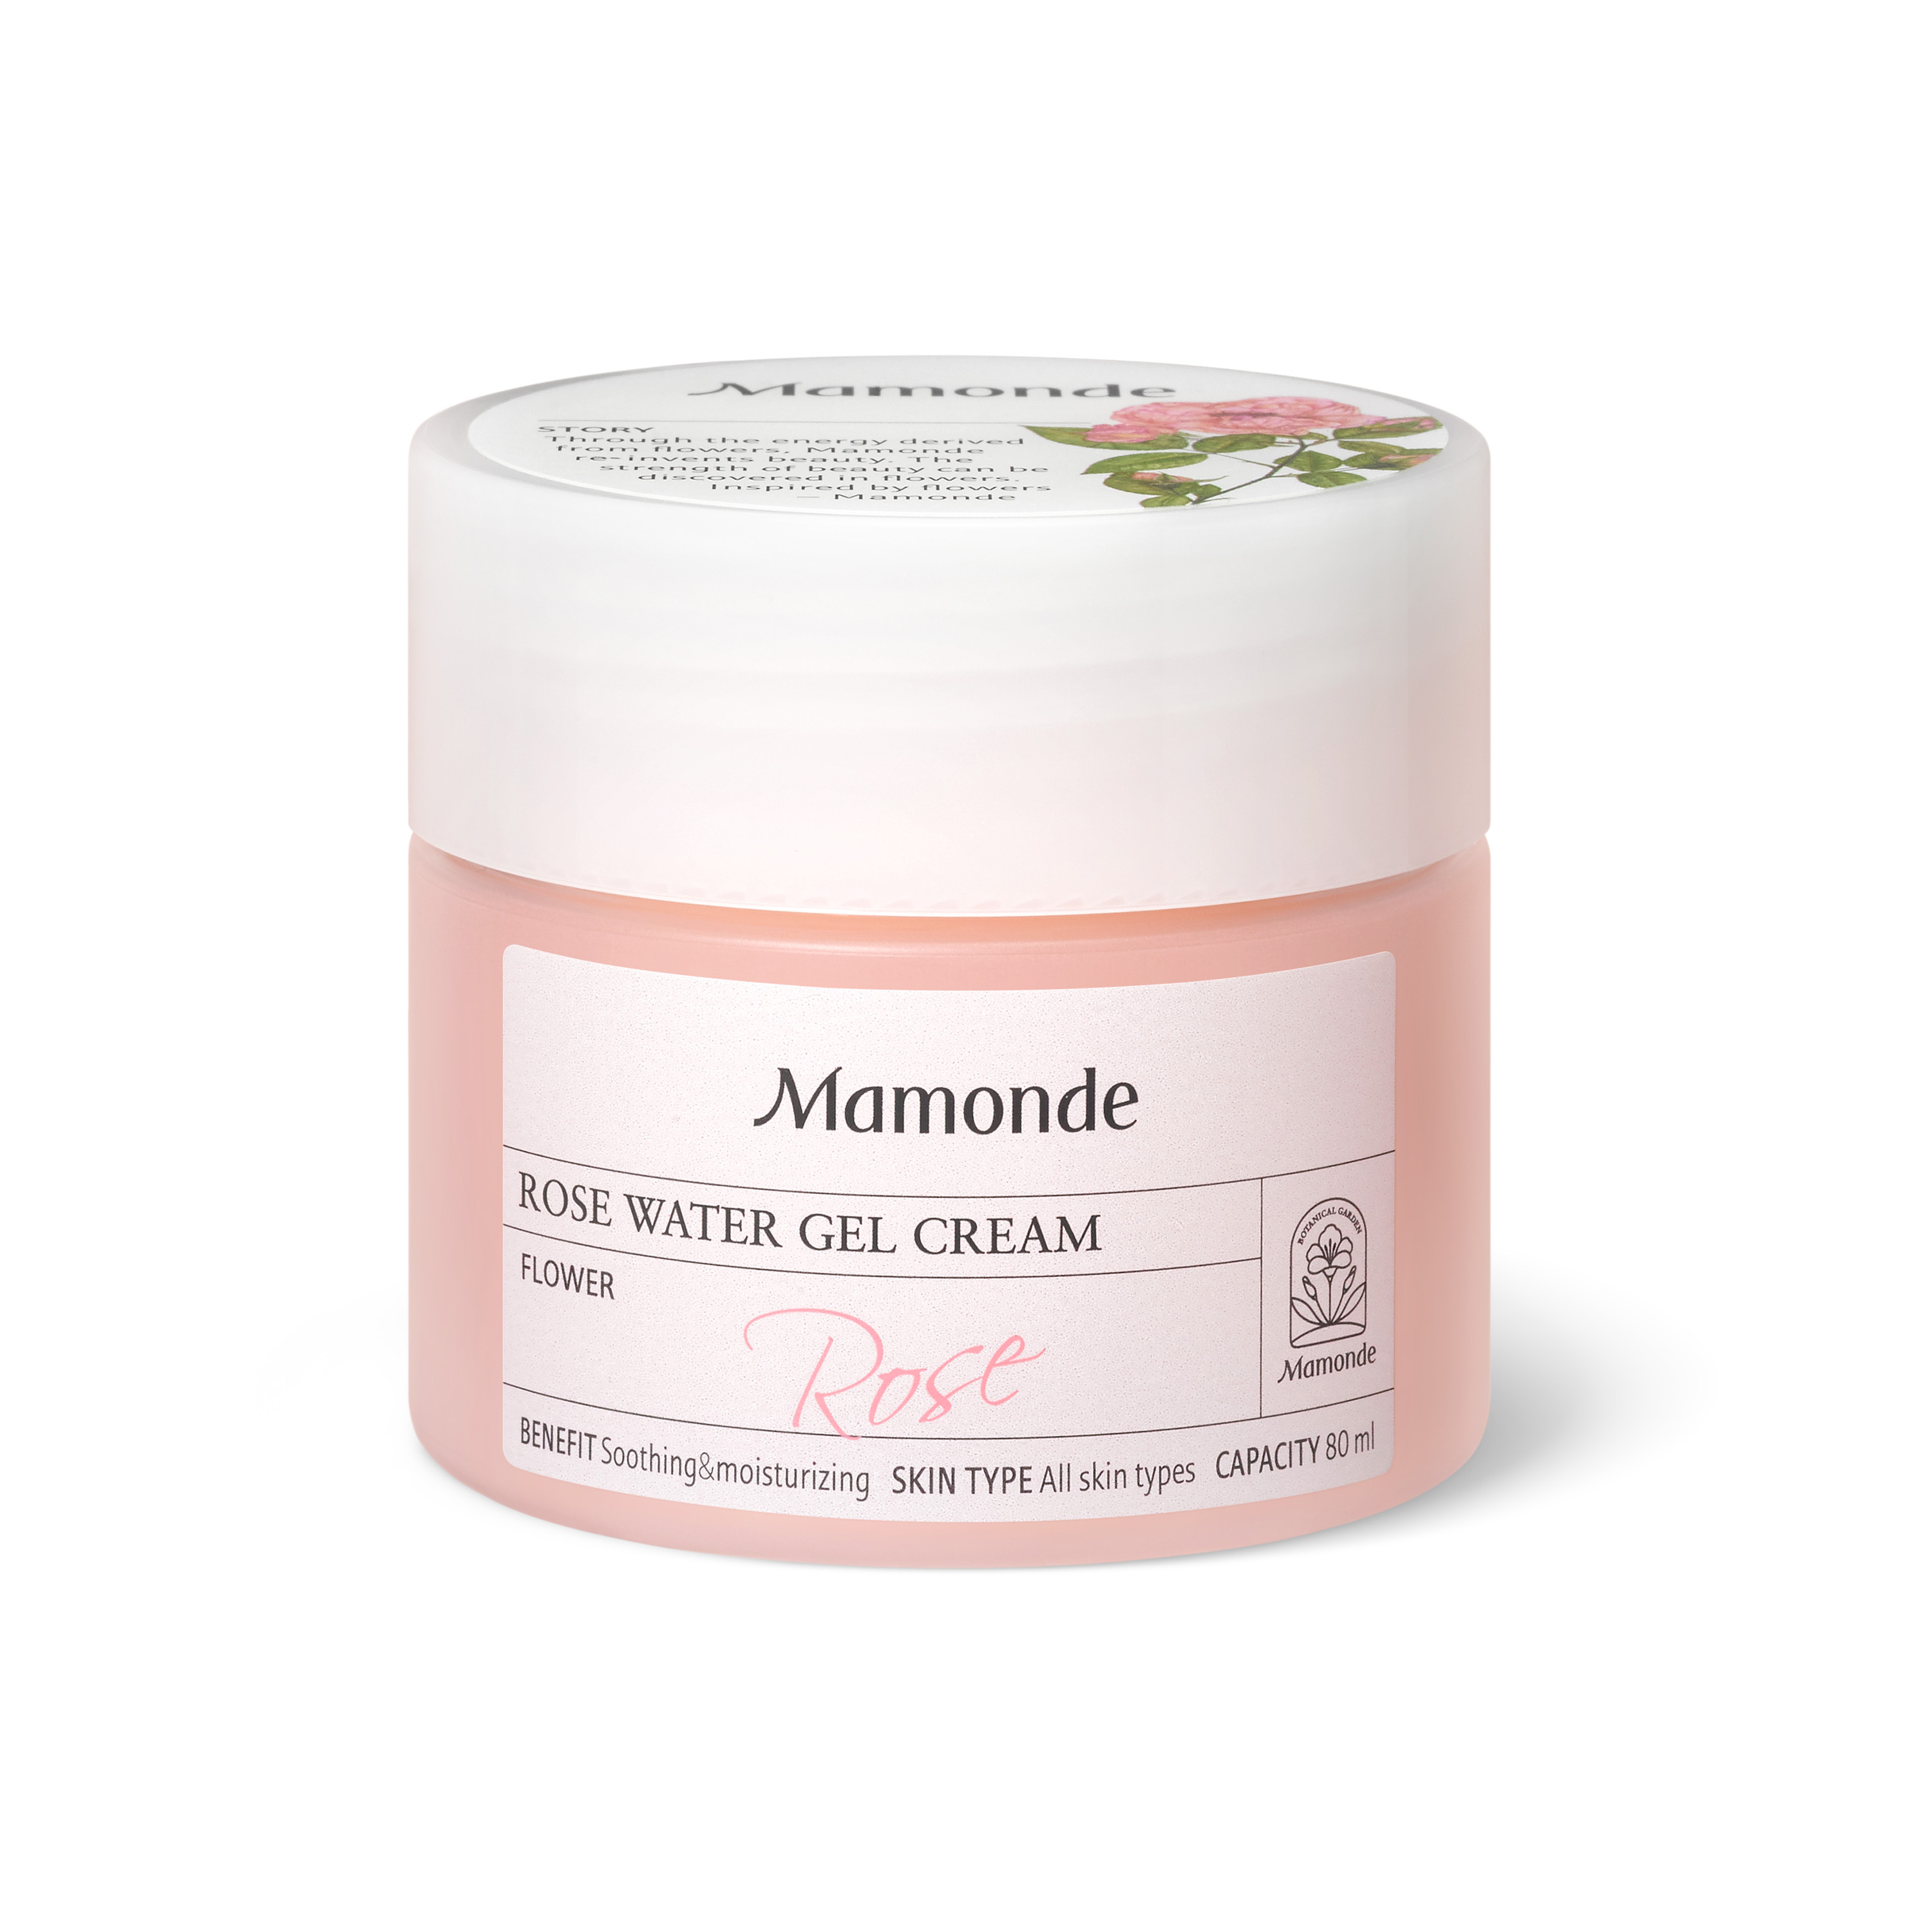 Mamonde Skin Care ROSE WATER GEL CREAM - Moisturizing Cream, Skin Soothing